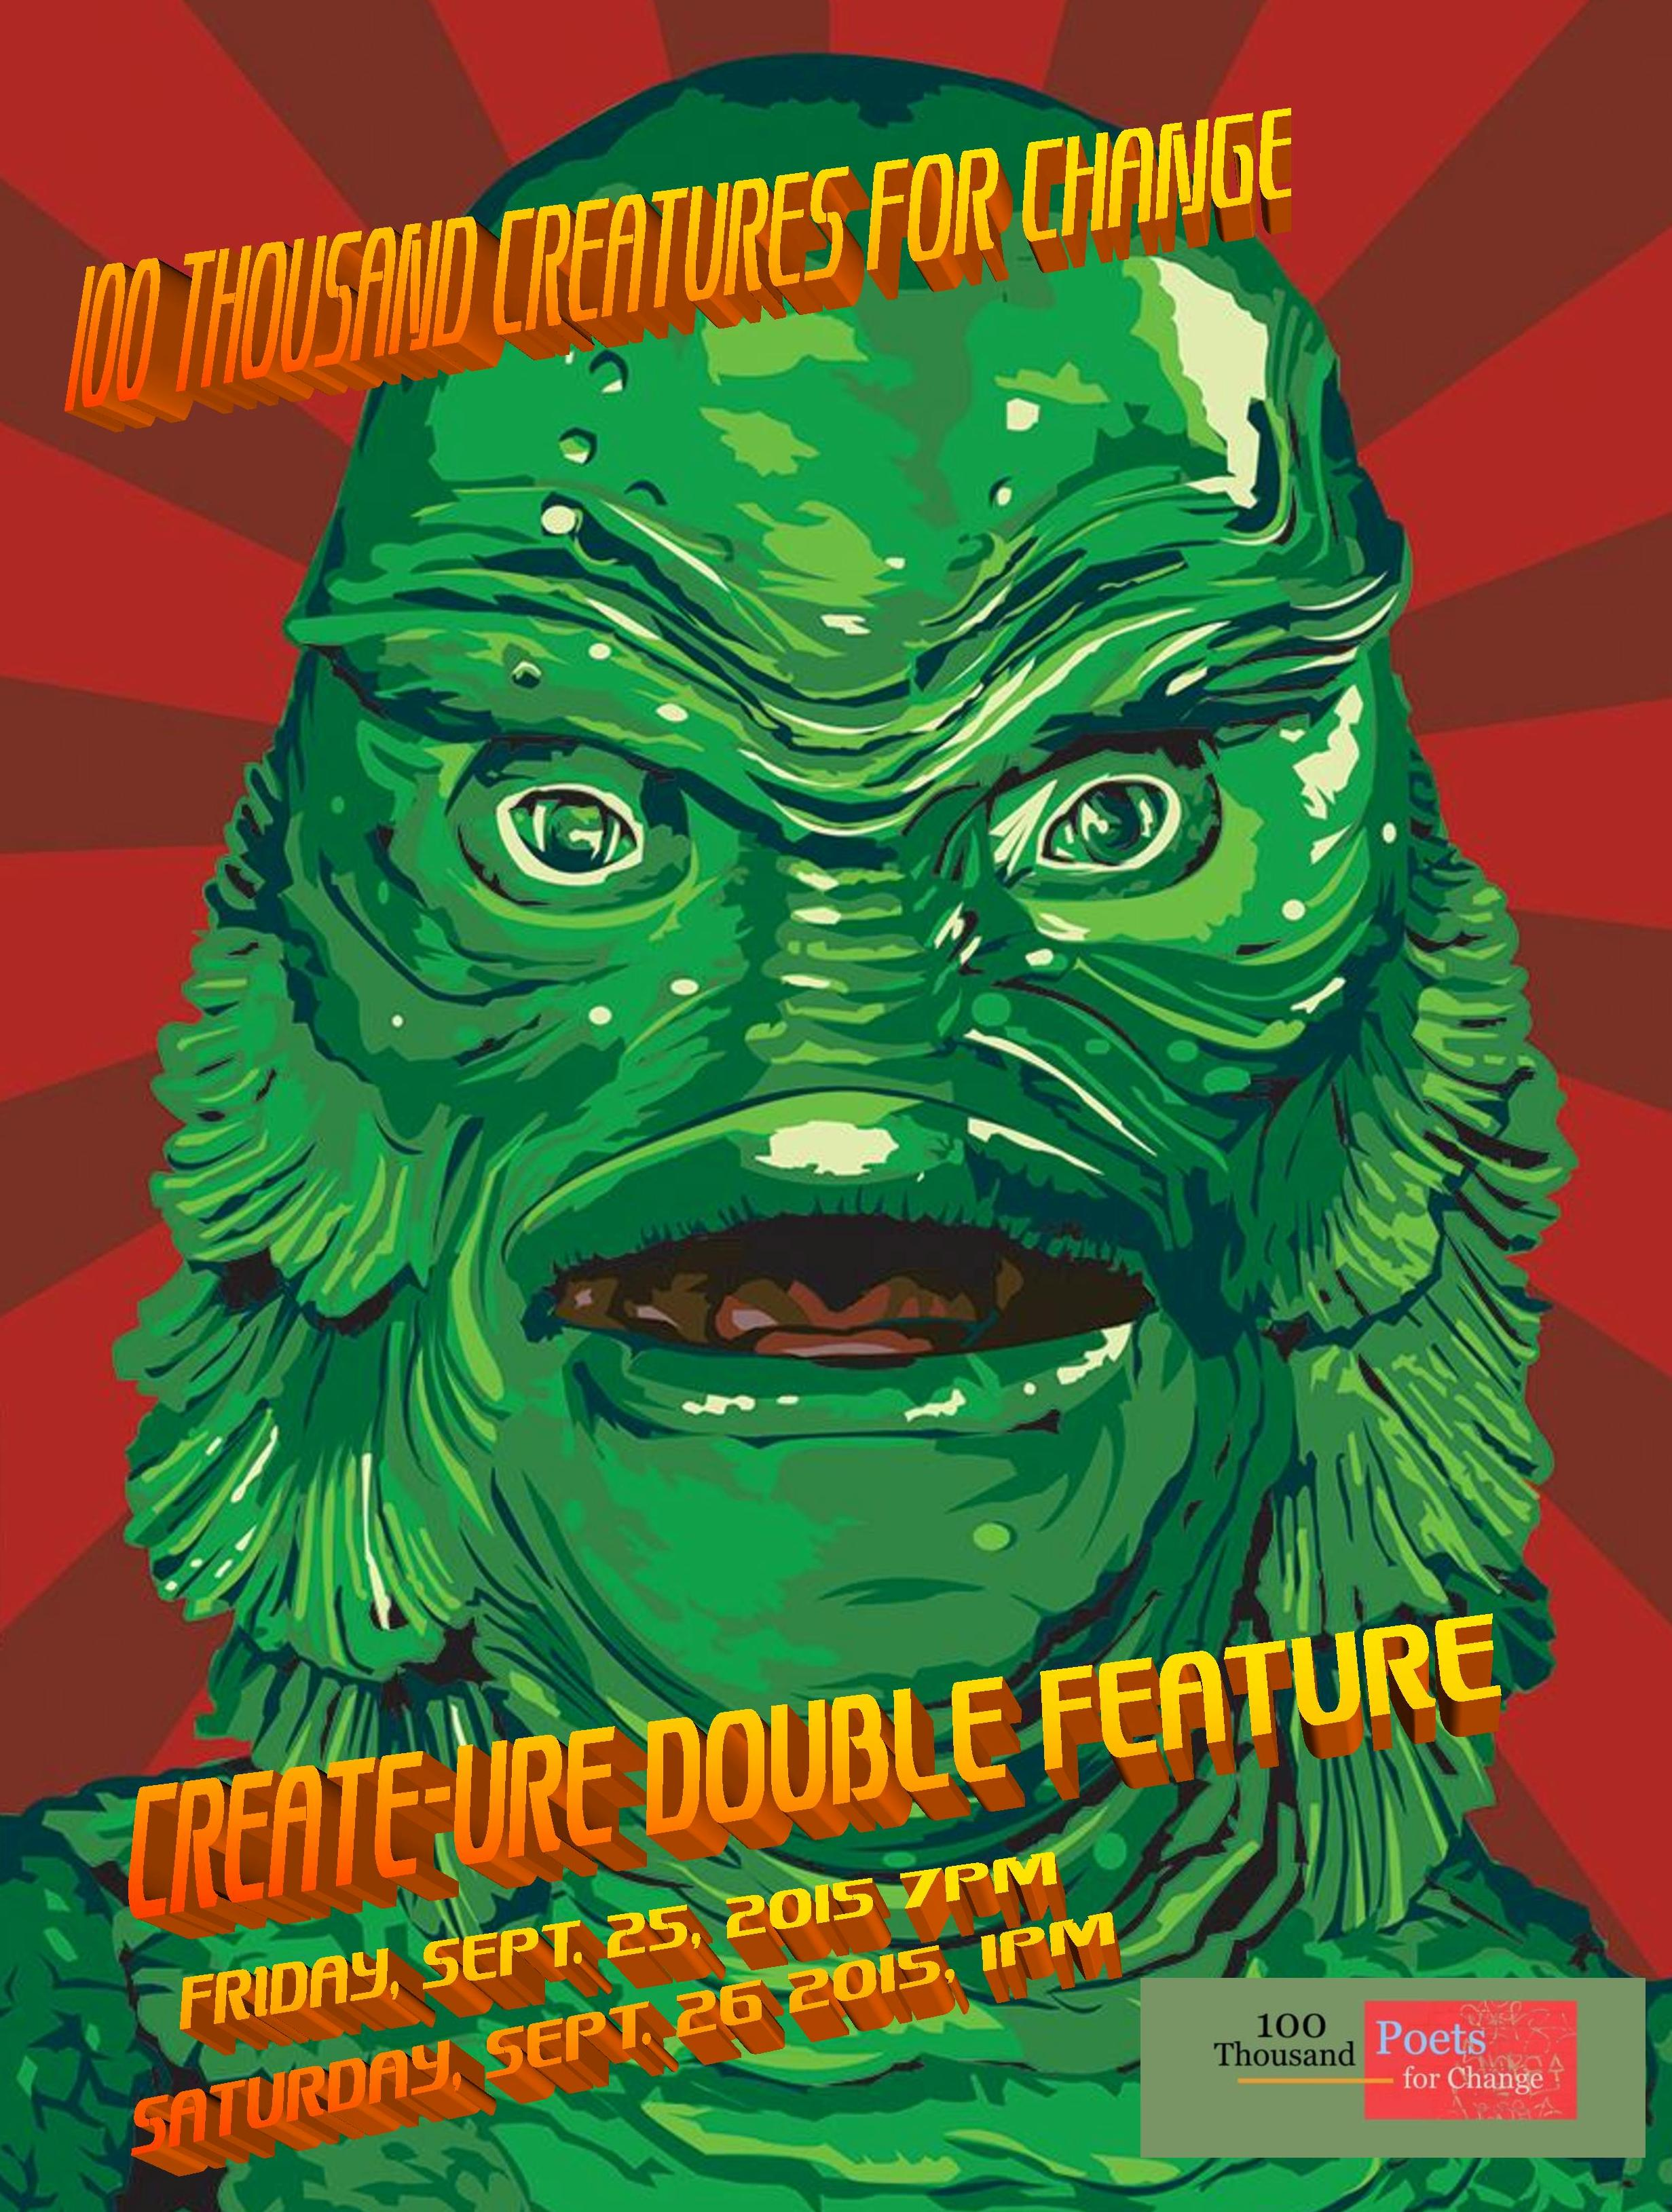 creature double feature